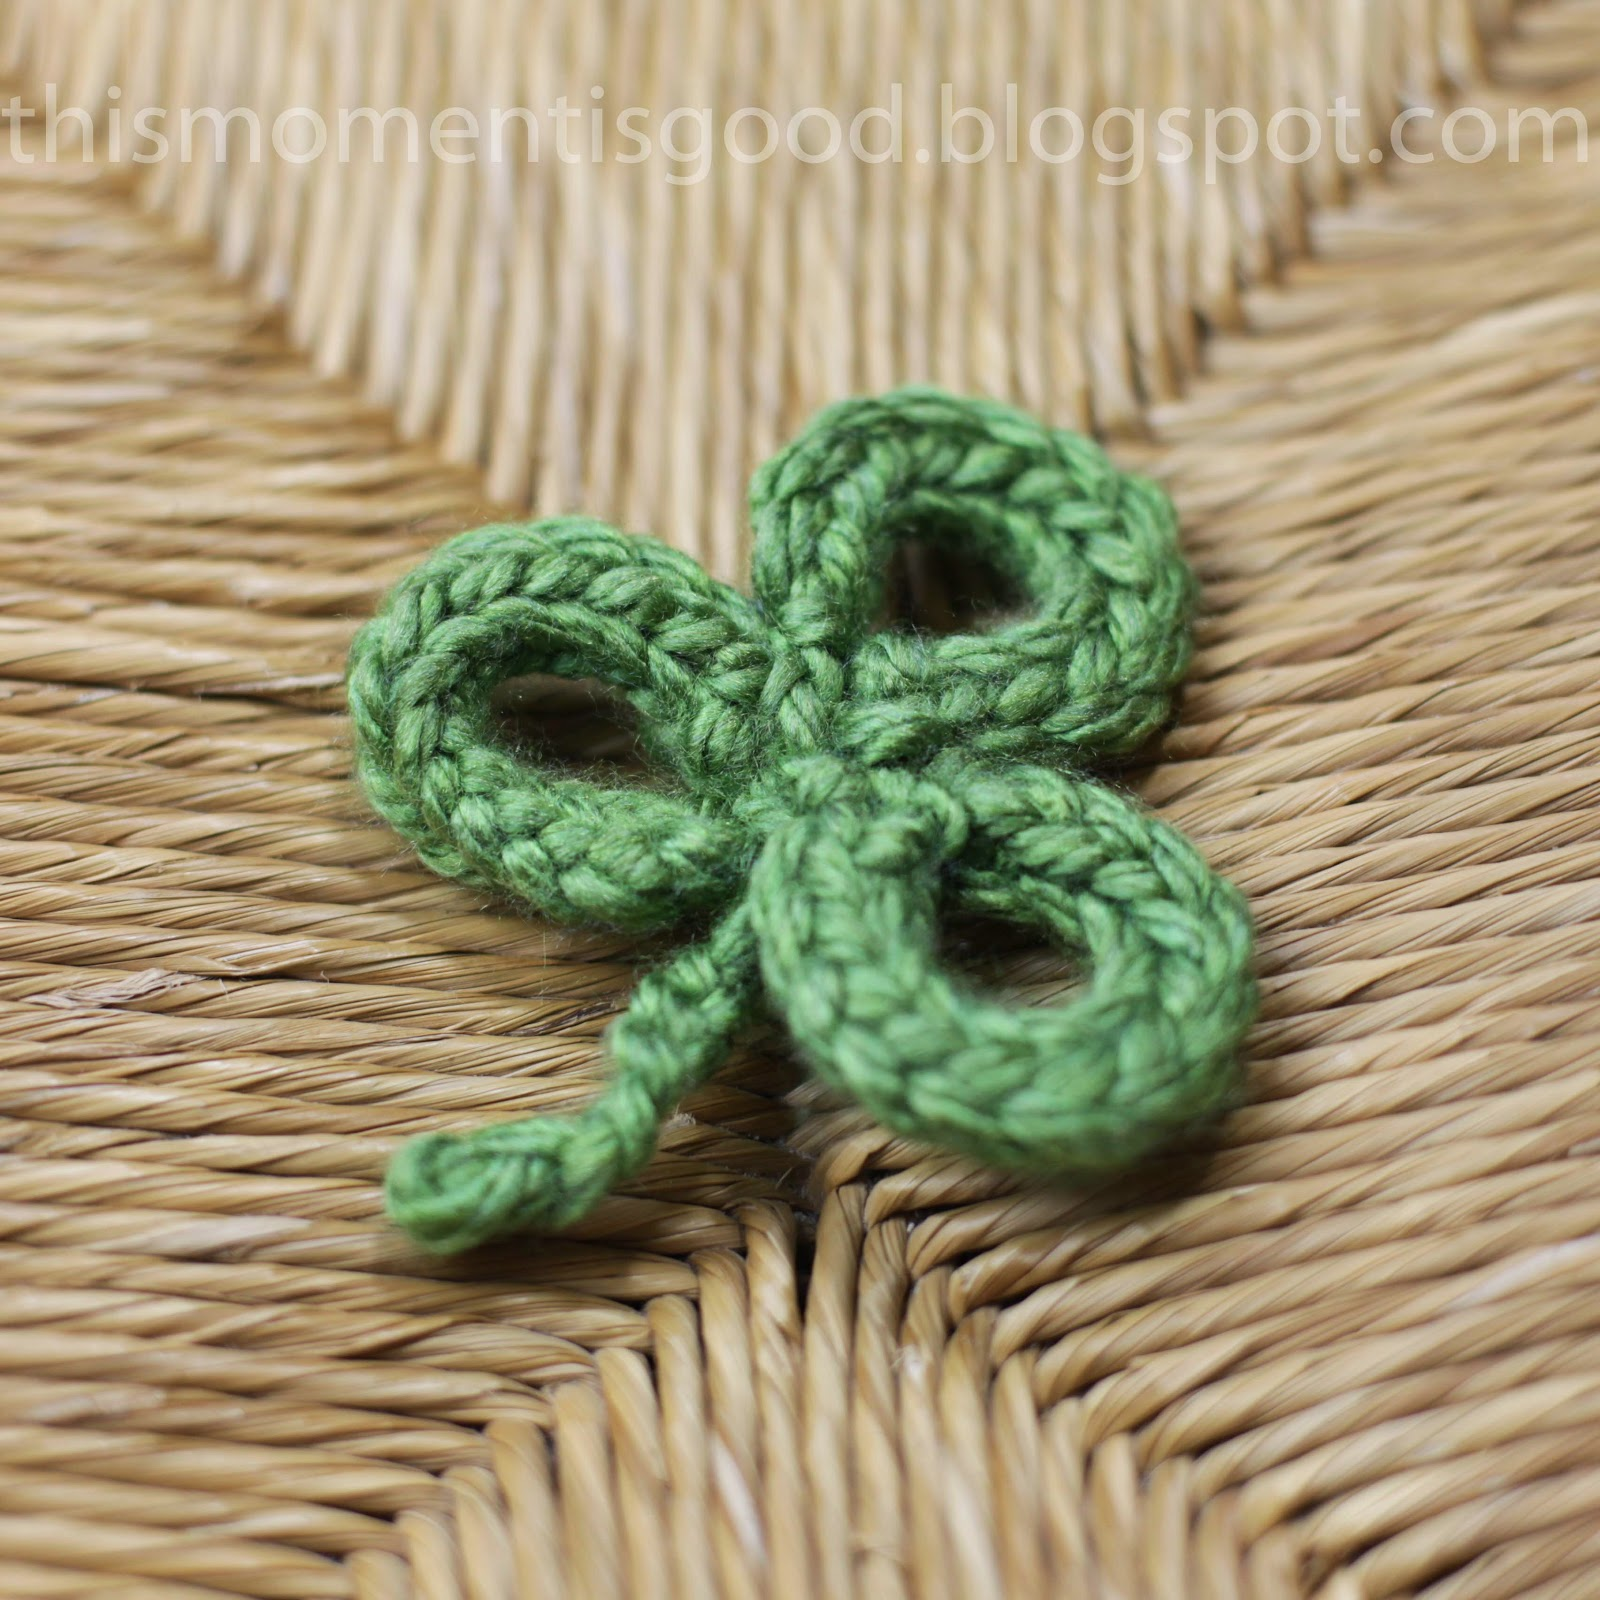 LOOM KNIT SHAMROCK/3 LEAF CLOVER PATTERN | Loom Knitting by This ...